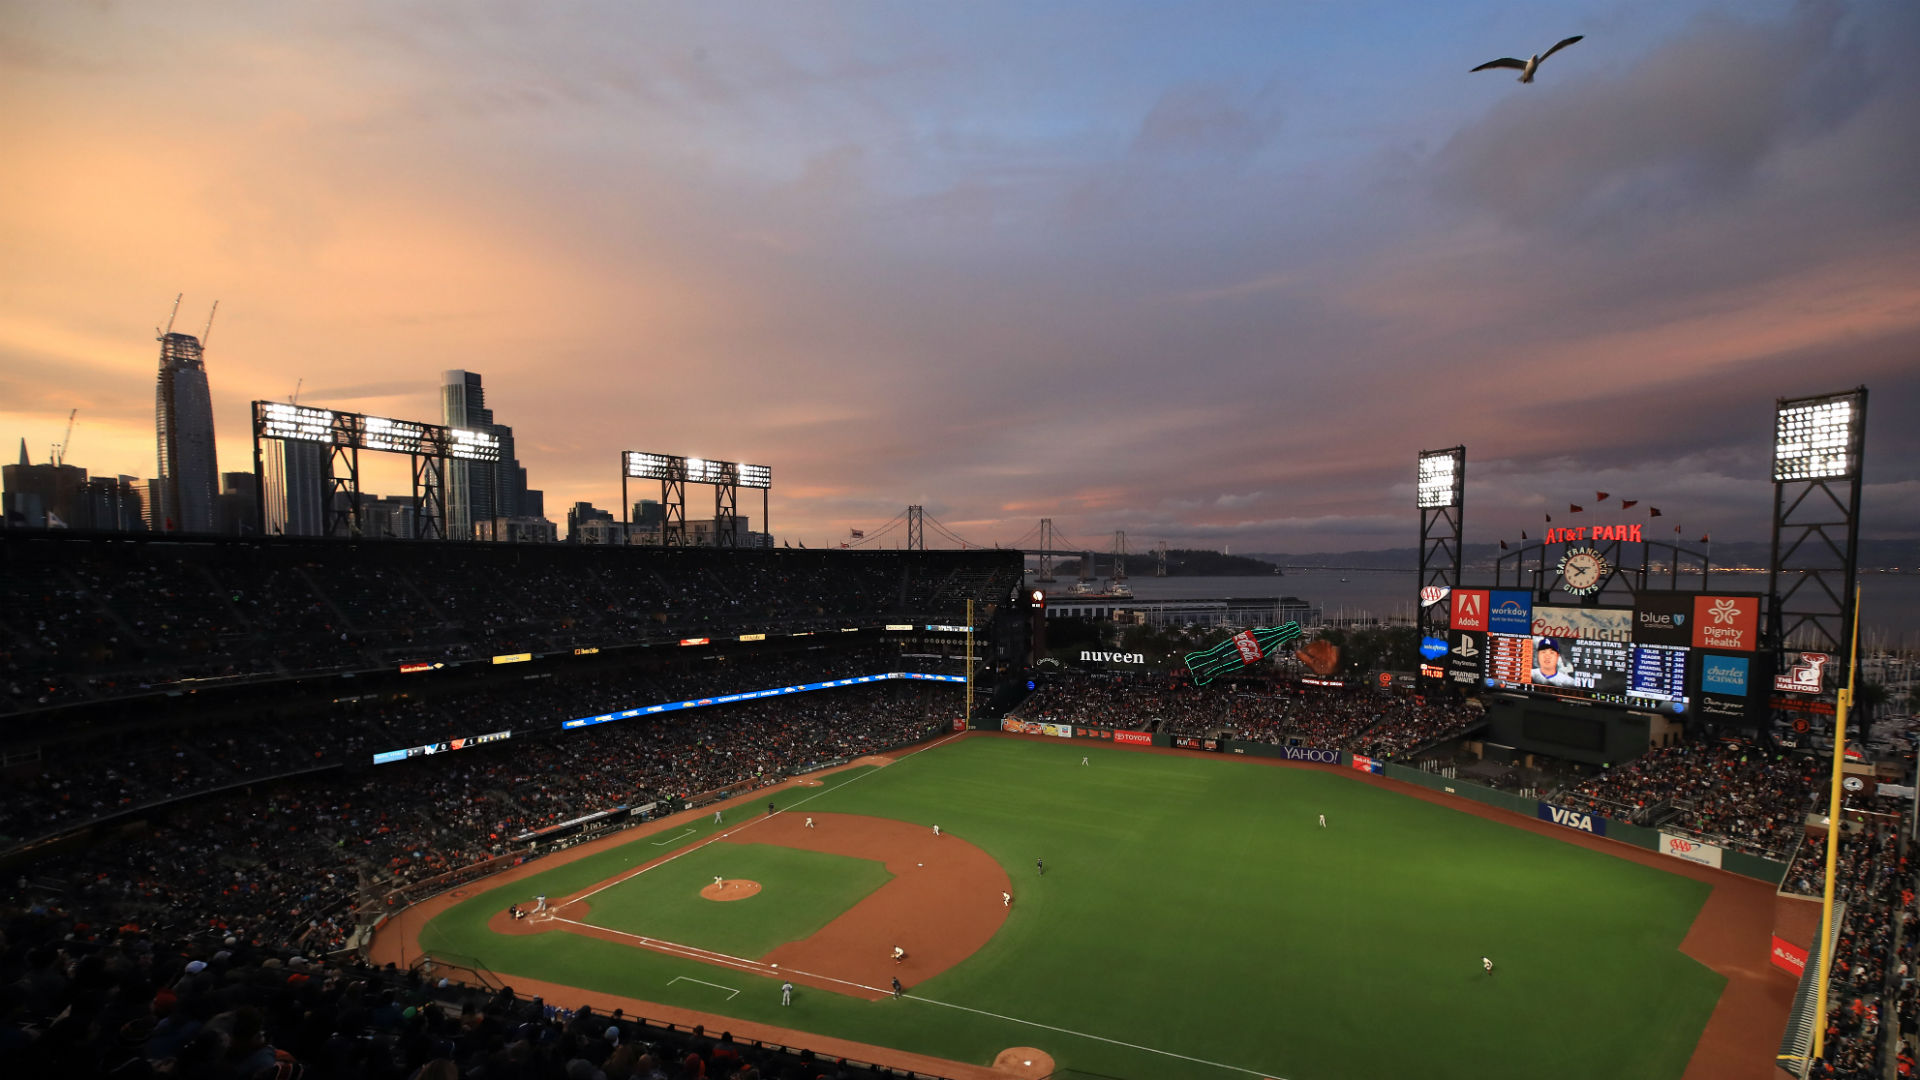 Raiders to play in MLB Giants' ballpark in 2019, report says